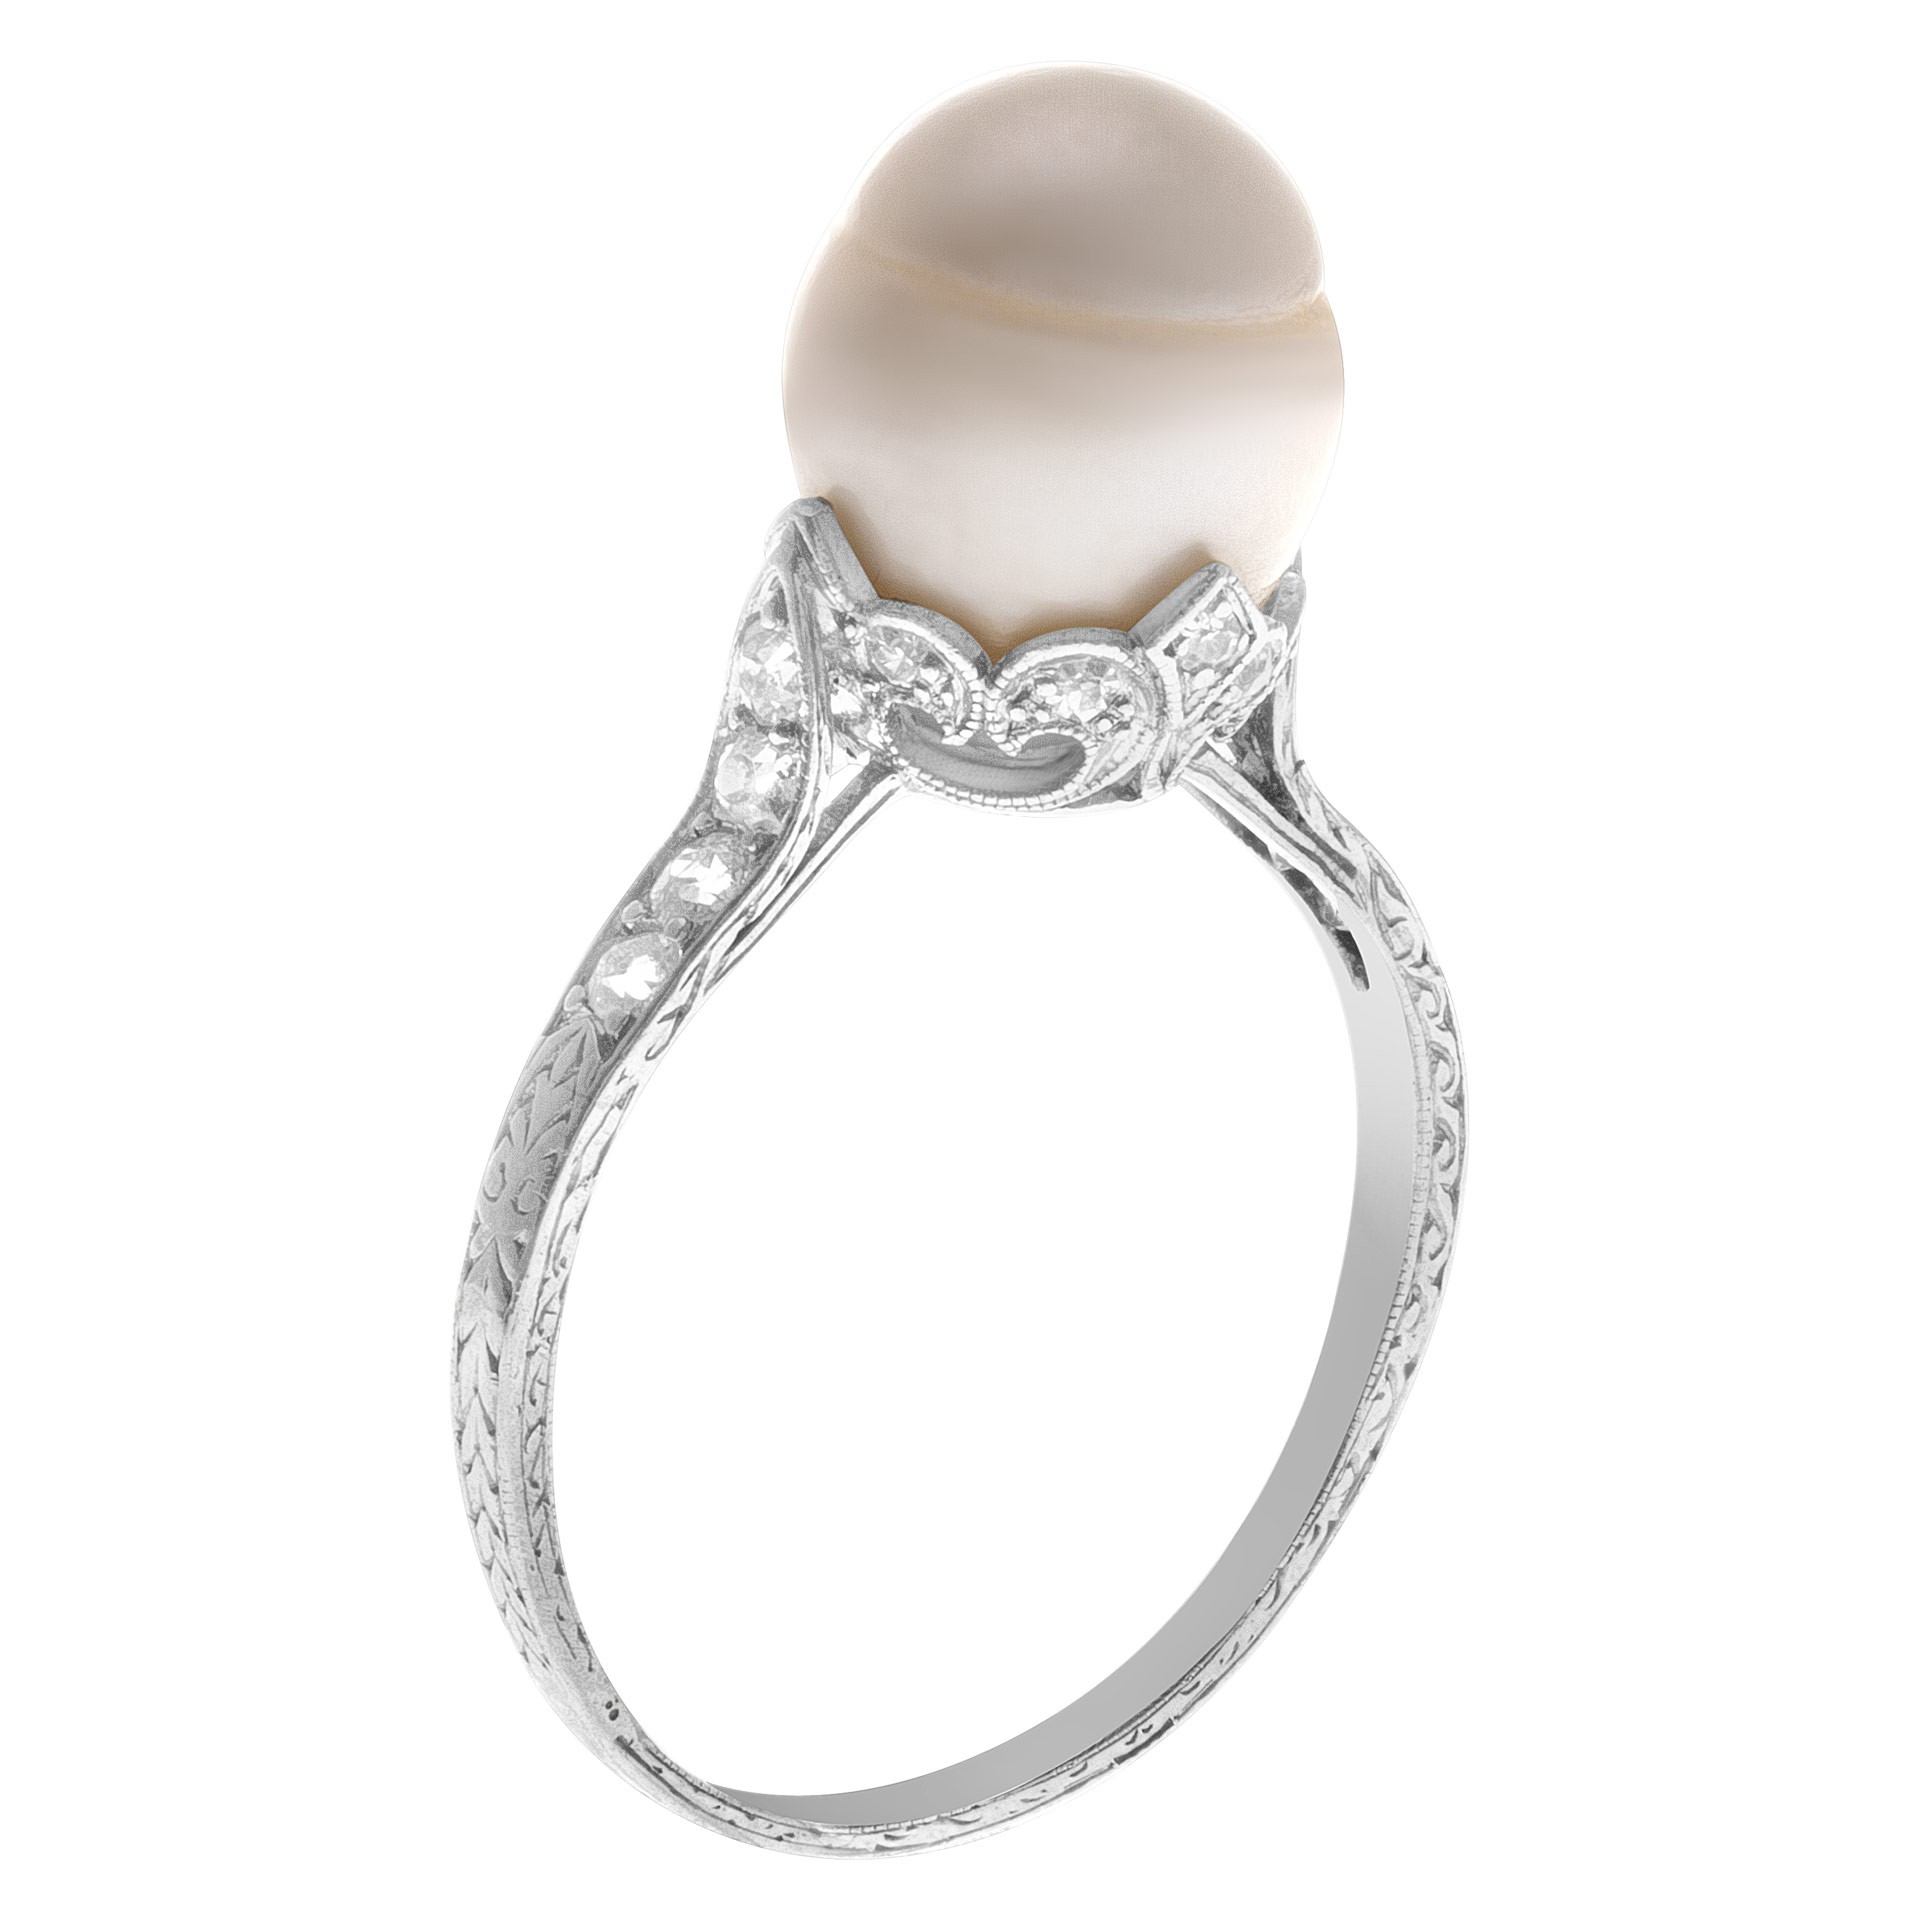 Fine Jewelry for Less than $1000: Platinum, pearl, and diamond ring.